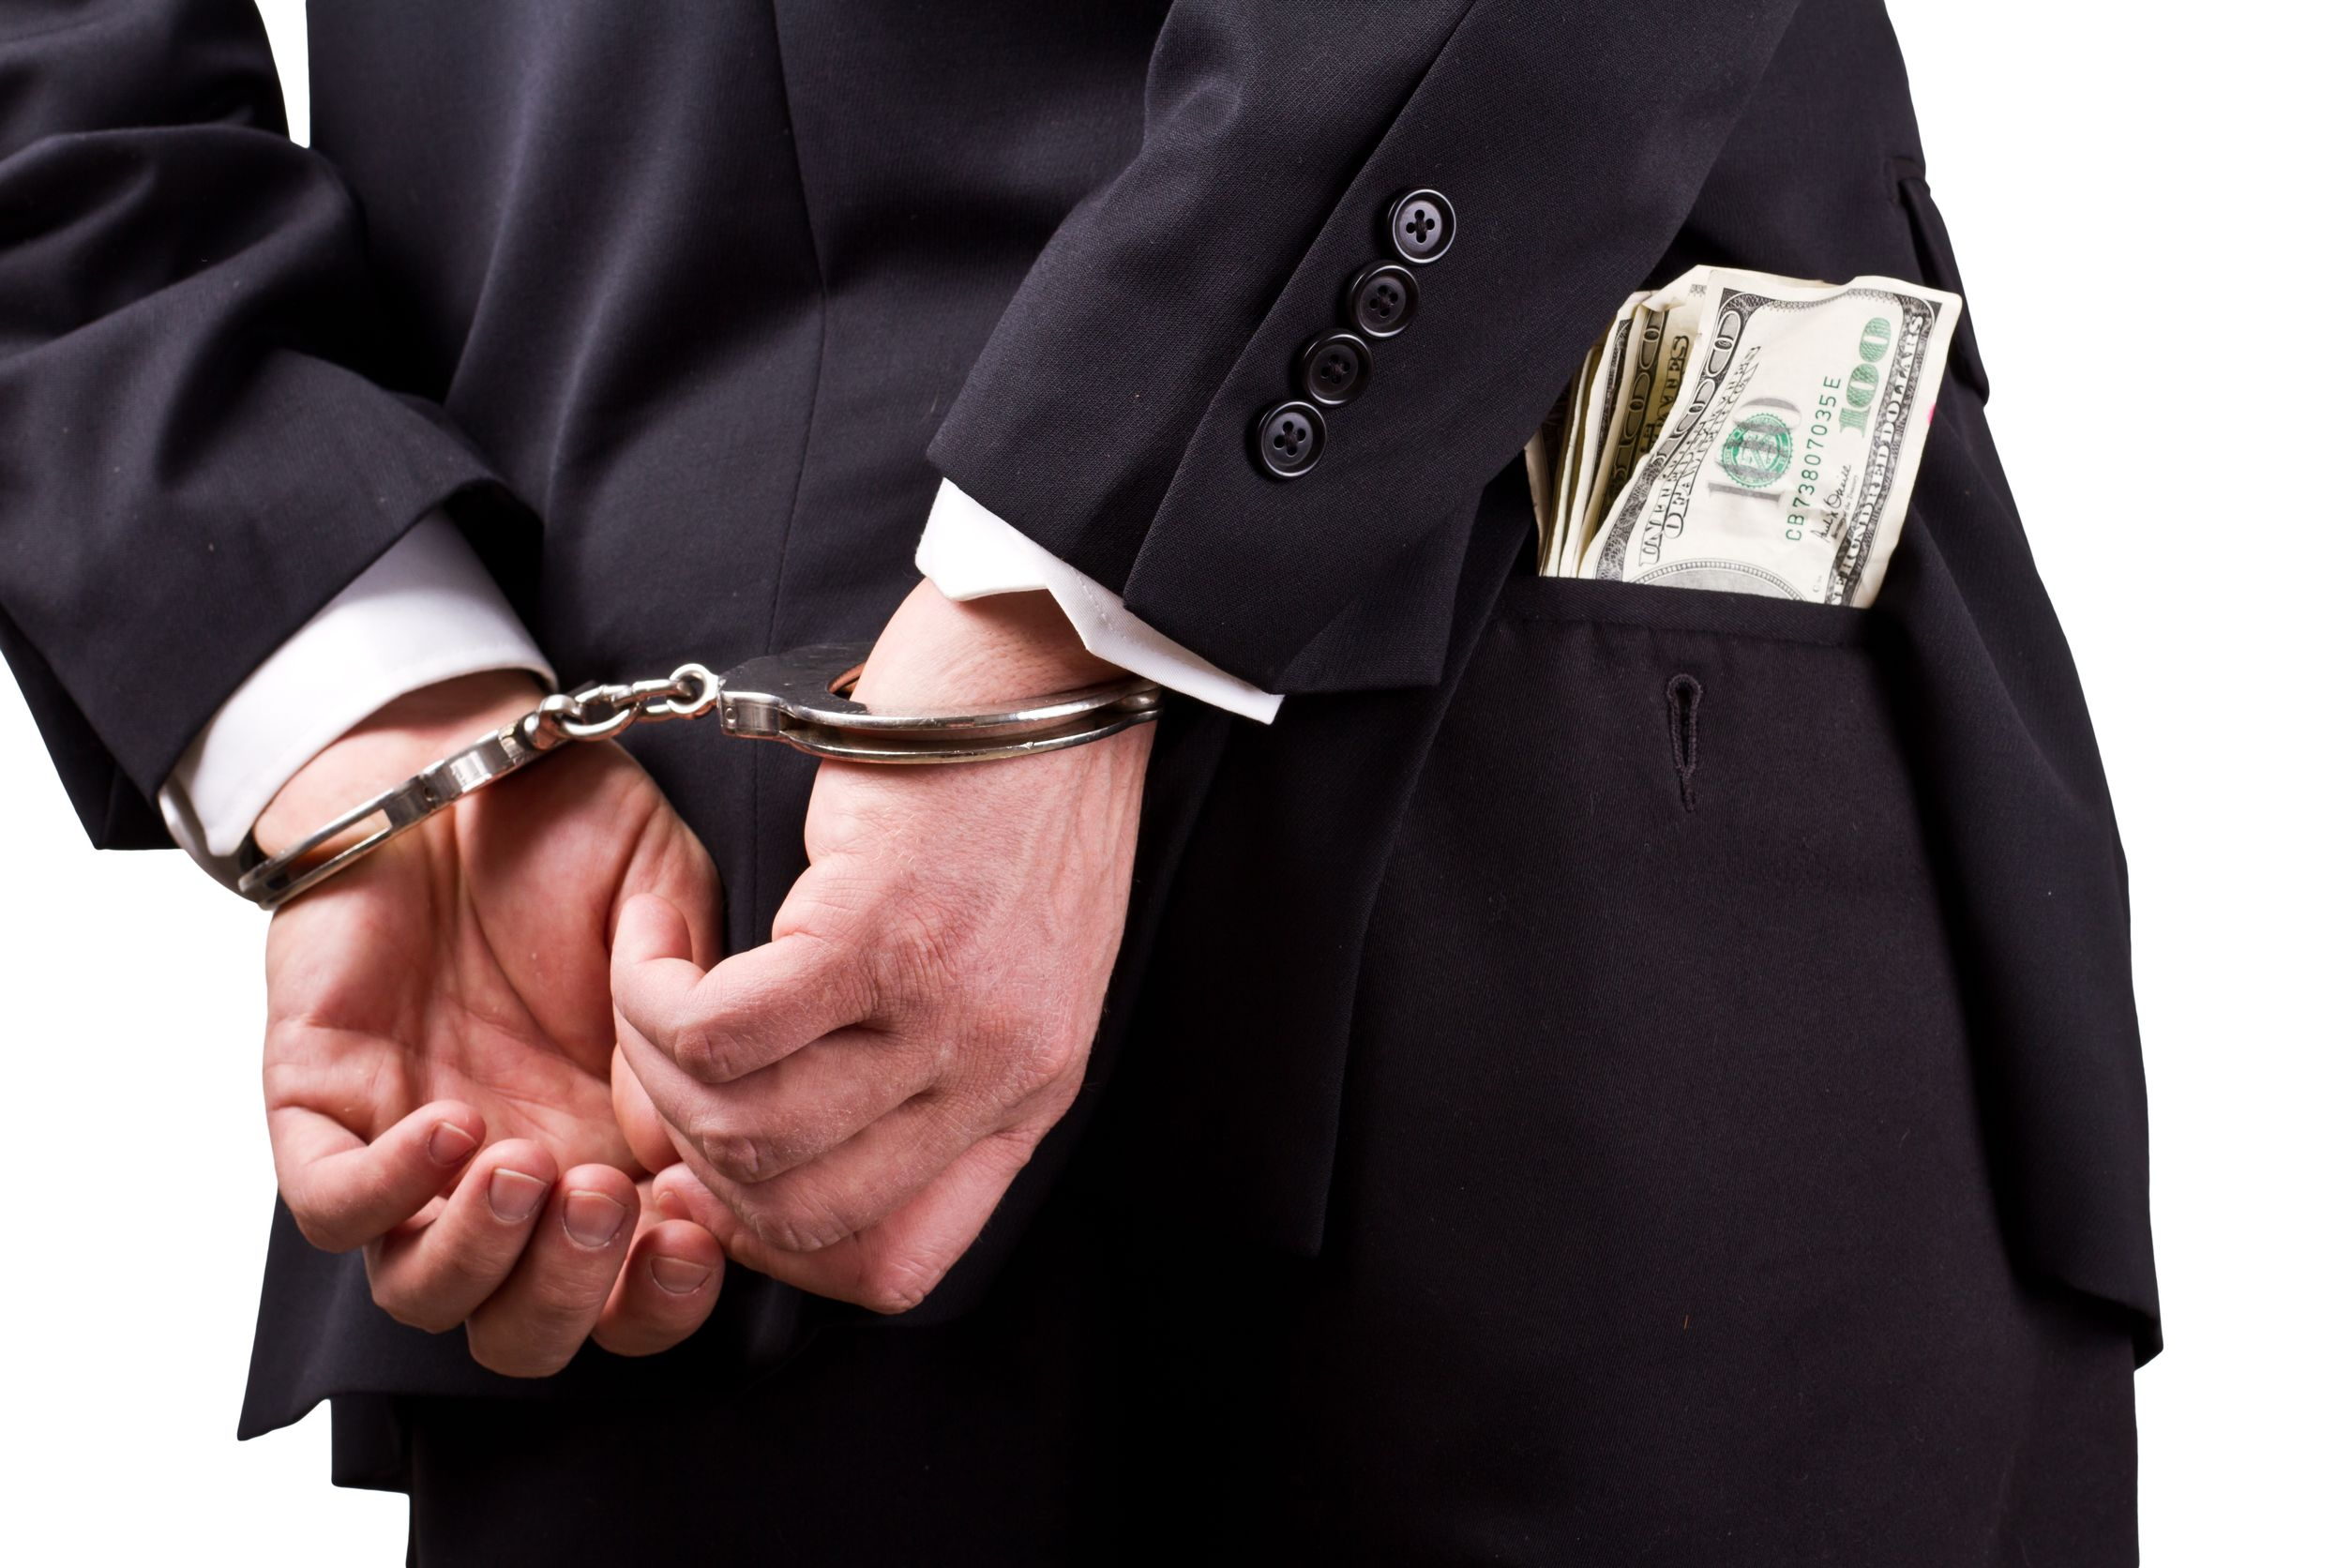 """the difference between white collar crime and street crime Gap"""" between public demands for """"just deserts"""" for white collar crime and the  perception  'traditional' or 'street' crime4 and although the same studies pointed  to a desire for increased  punished more severely reveals a marked difference."""